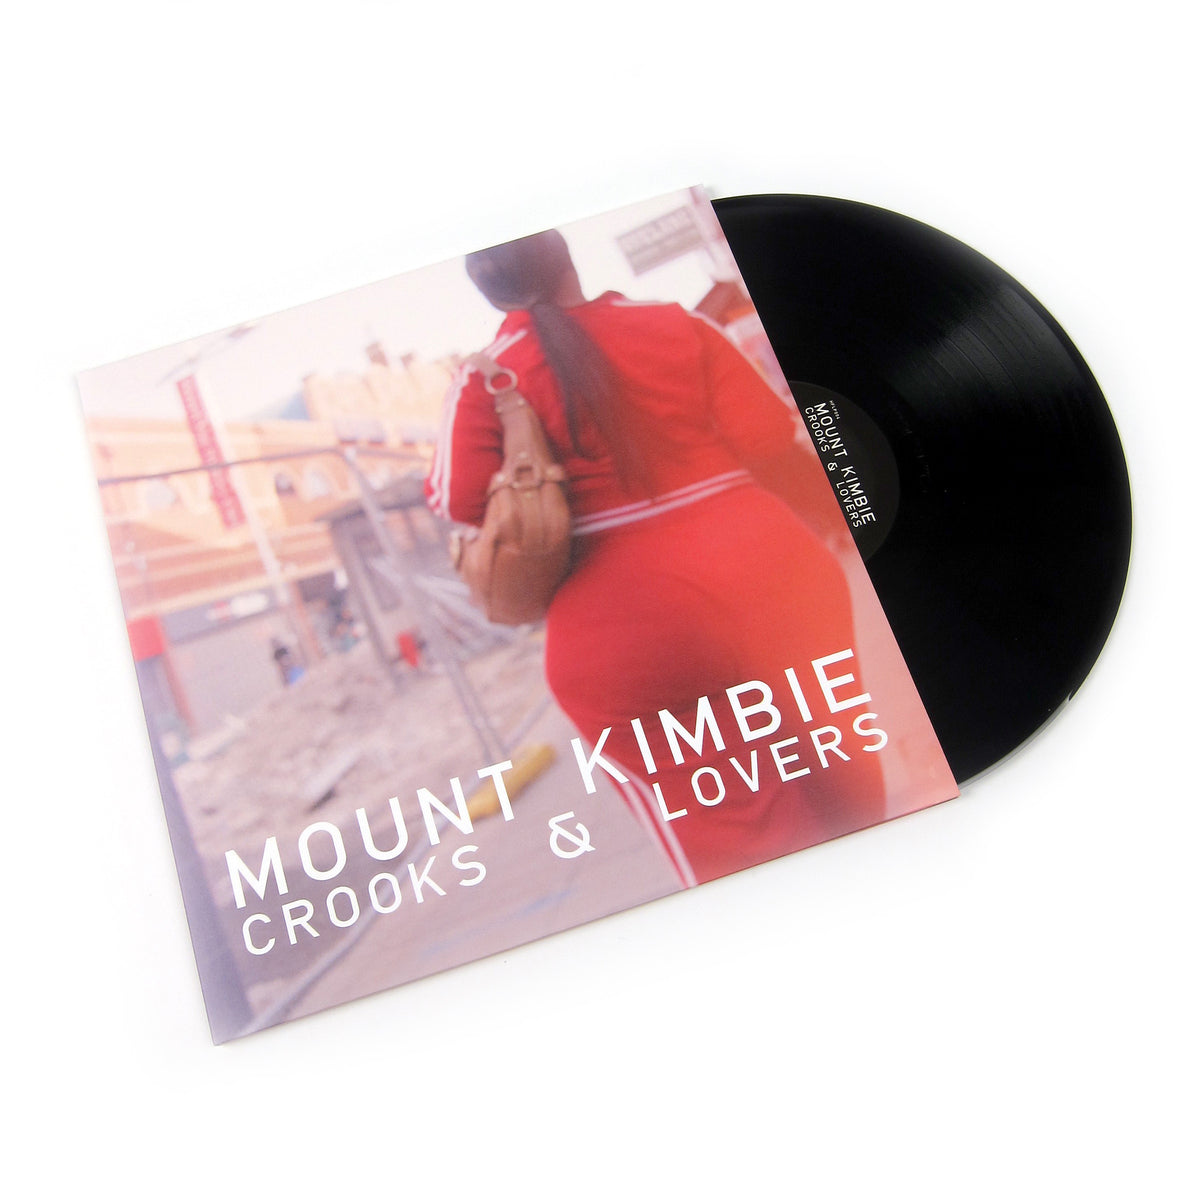 Mount Kimbie: Crooks & Lovers Vinyl 2LP